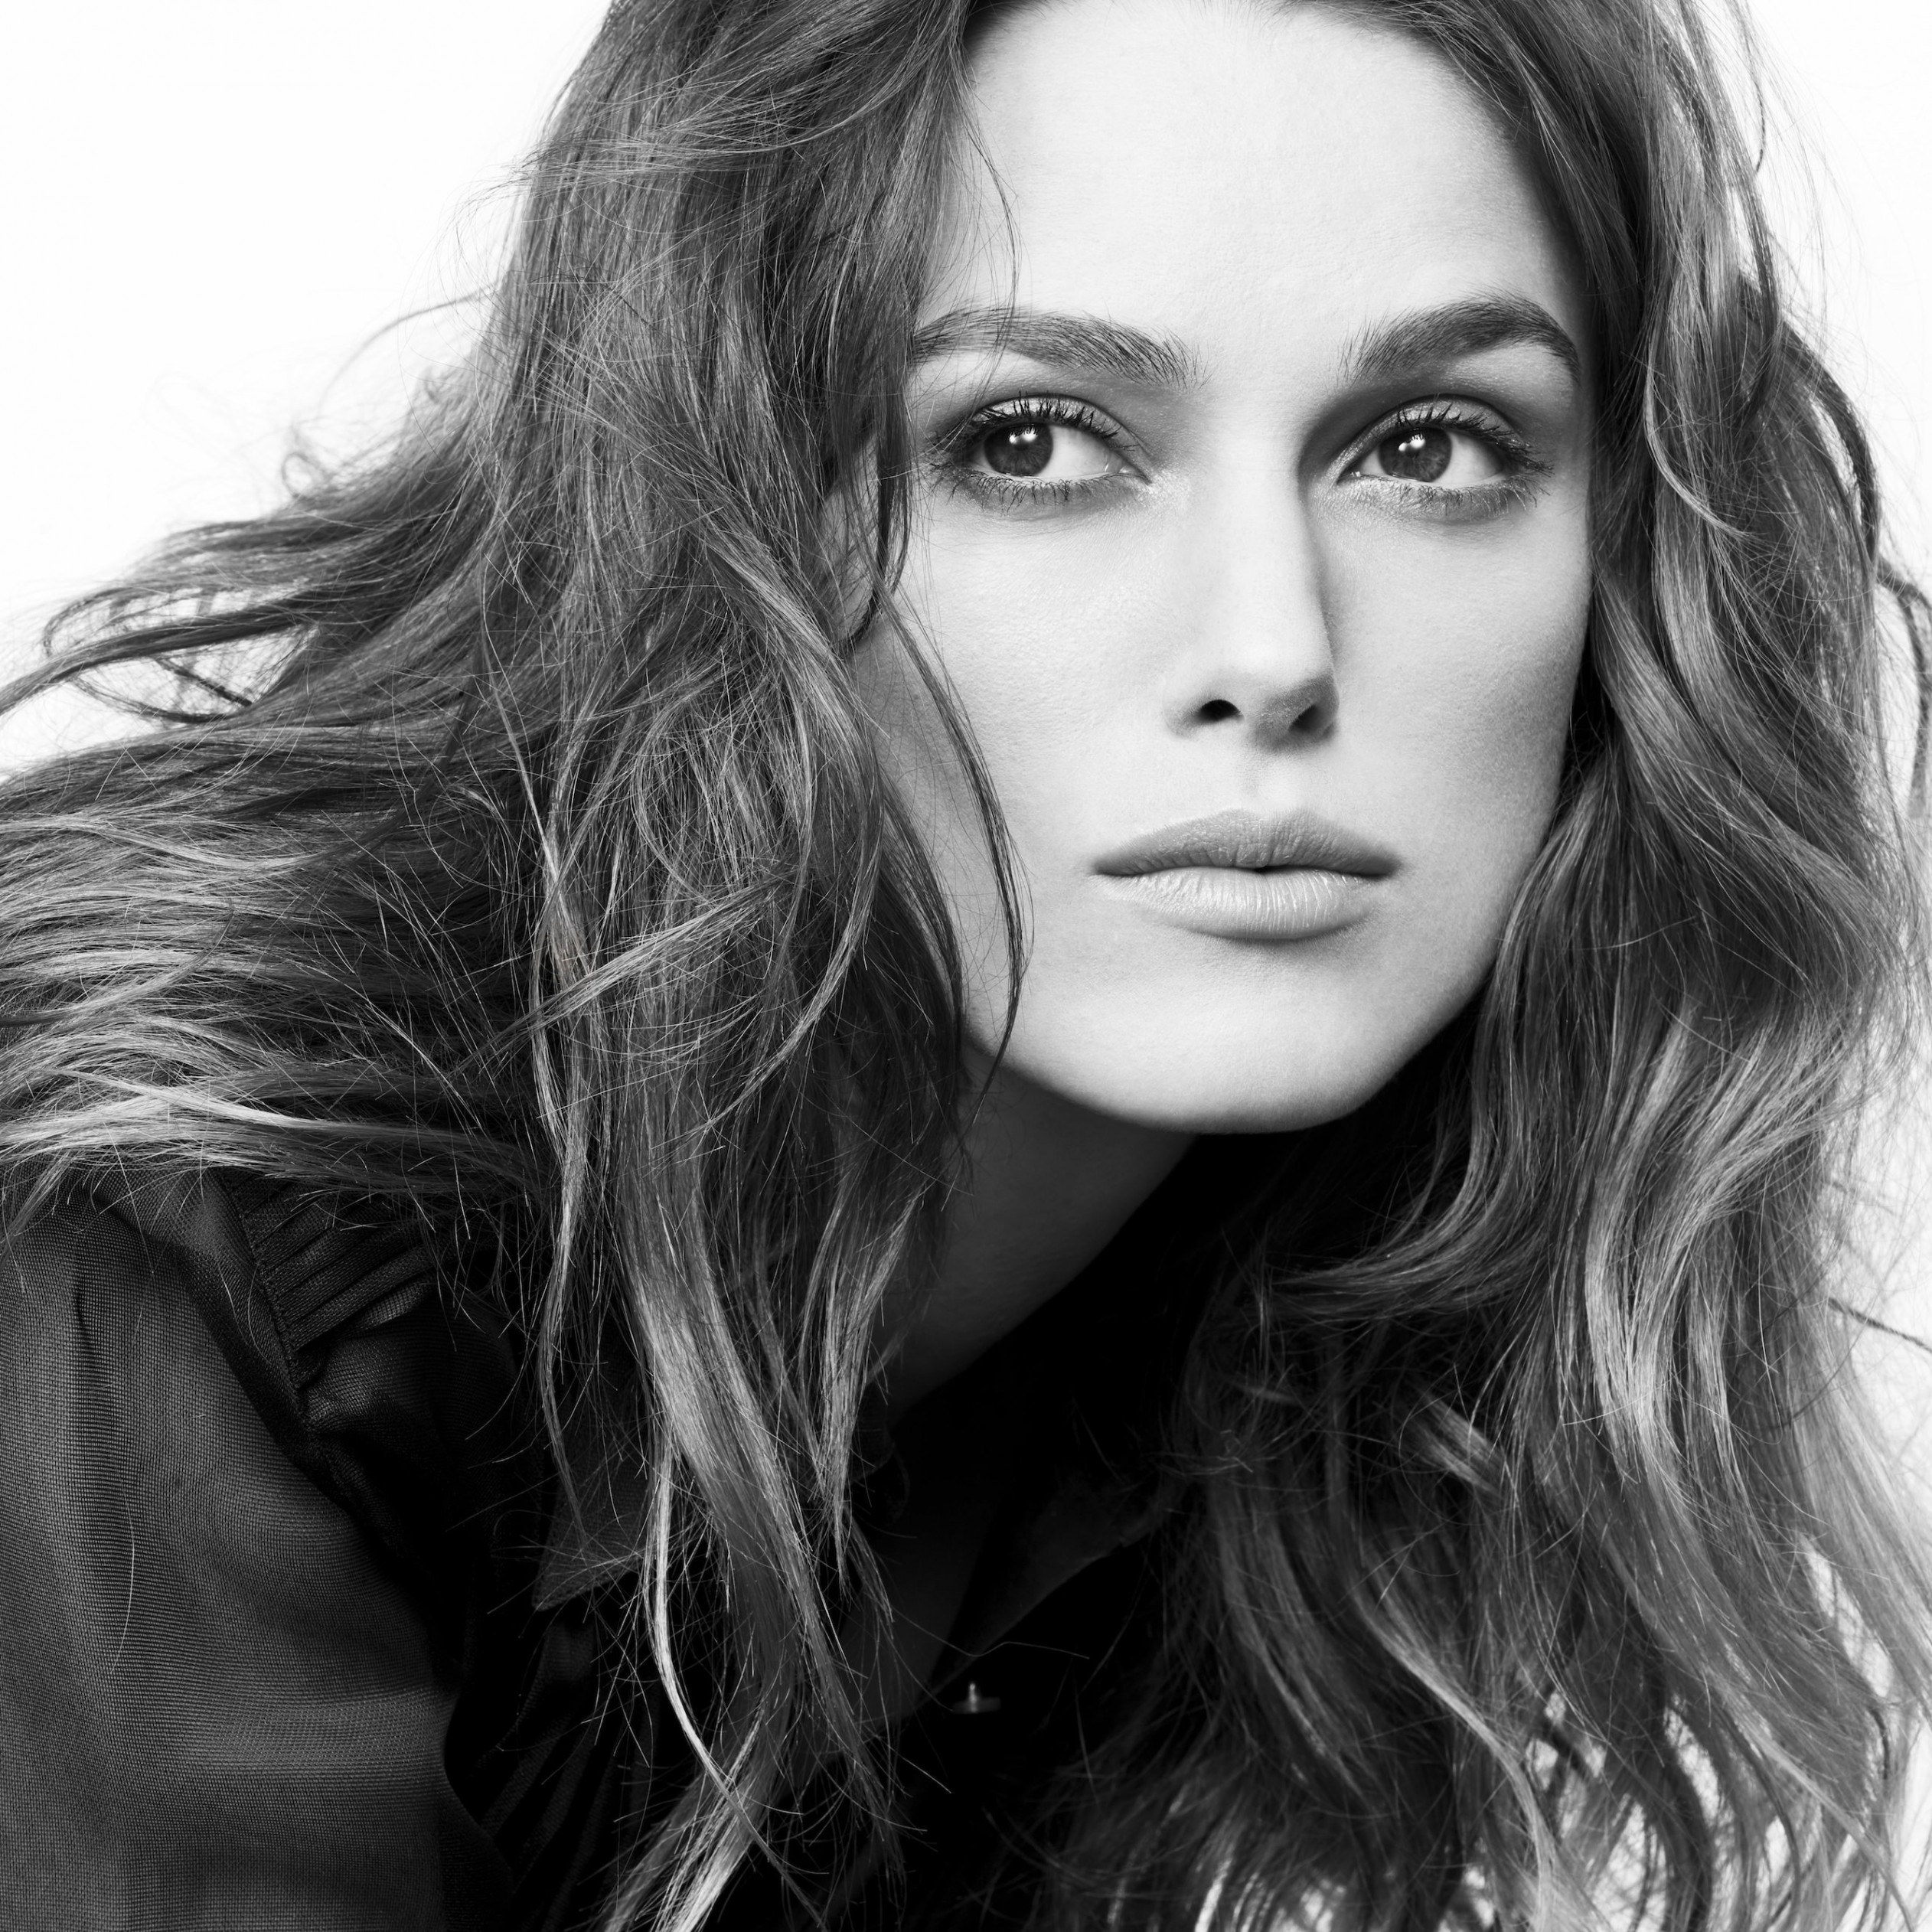 Keira Knightley in Black & White Wallpaper for Apple iPad 3